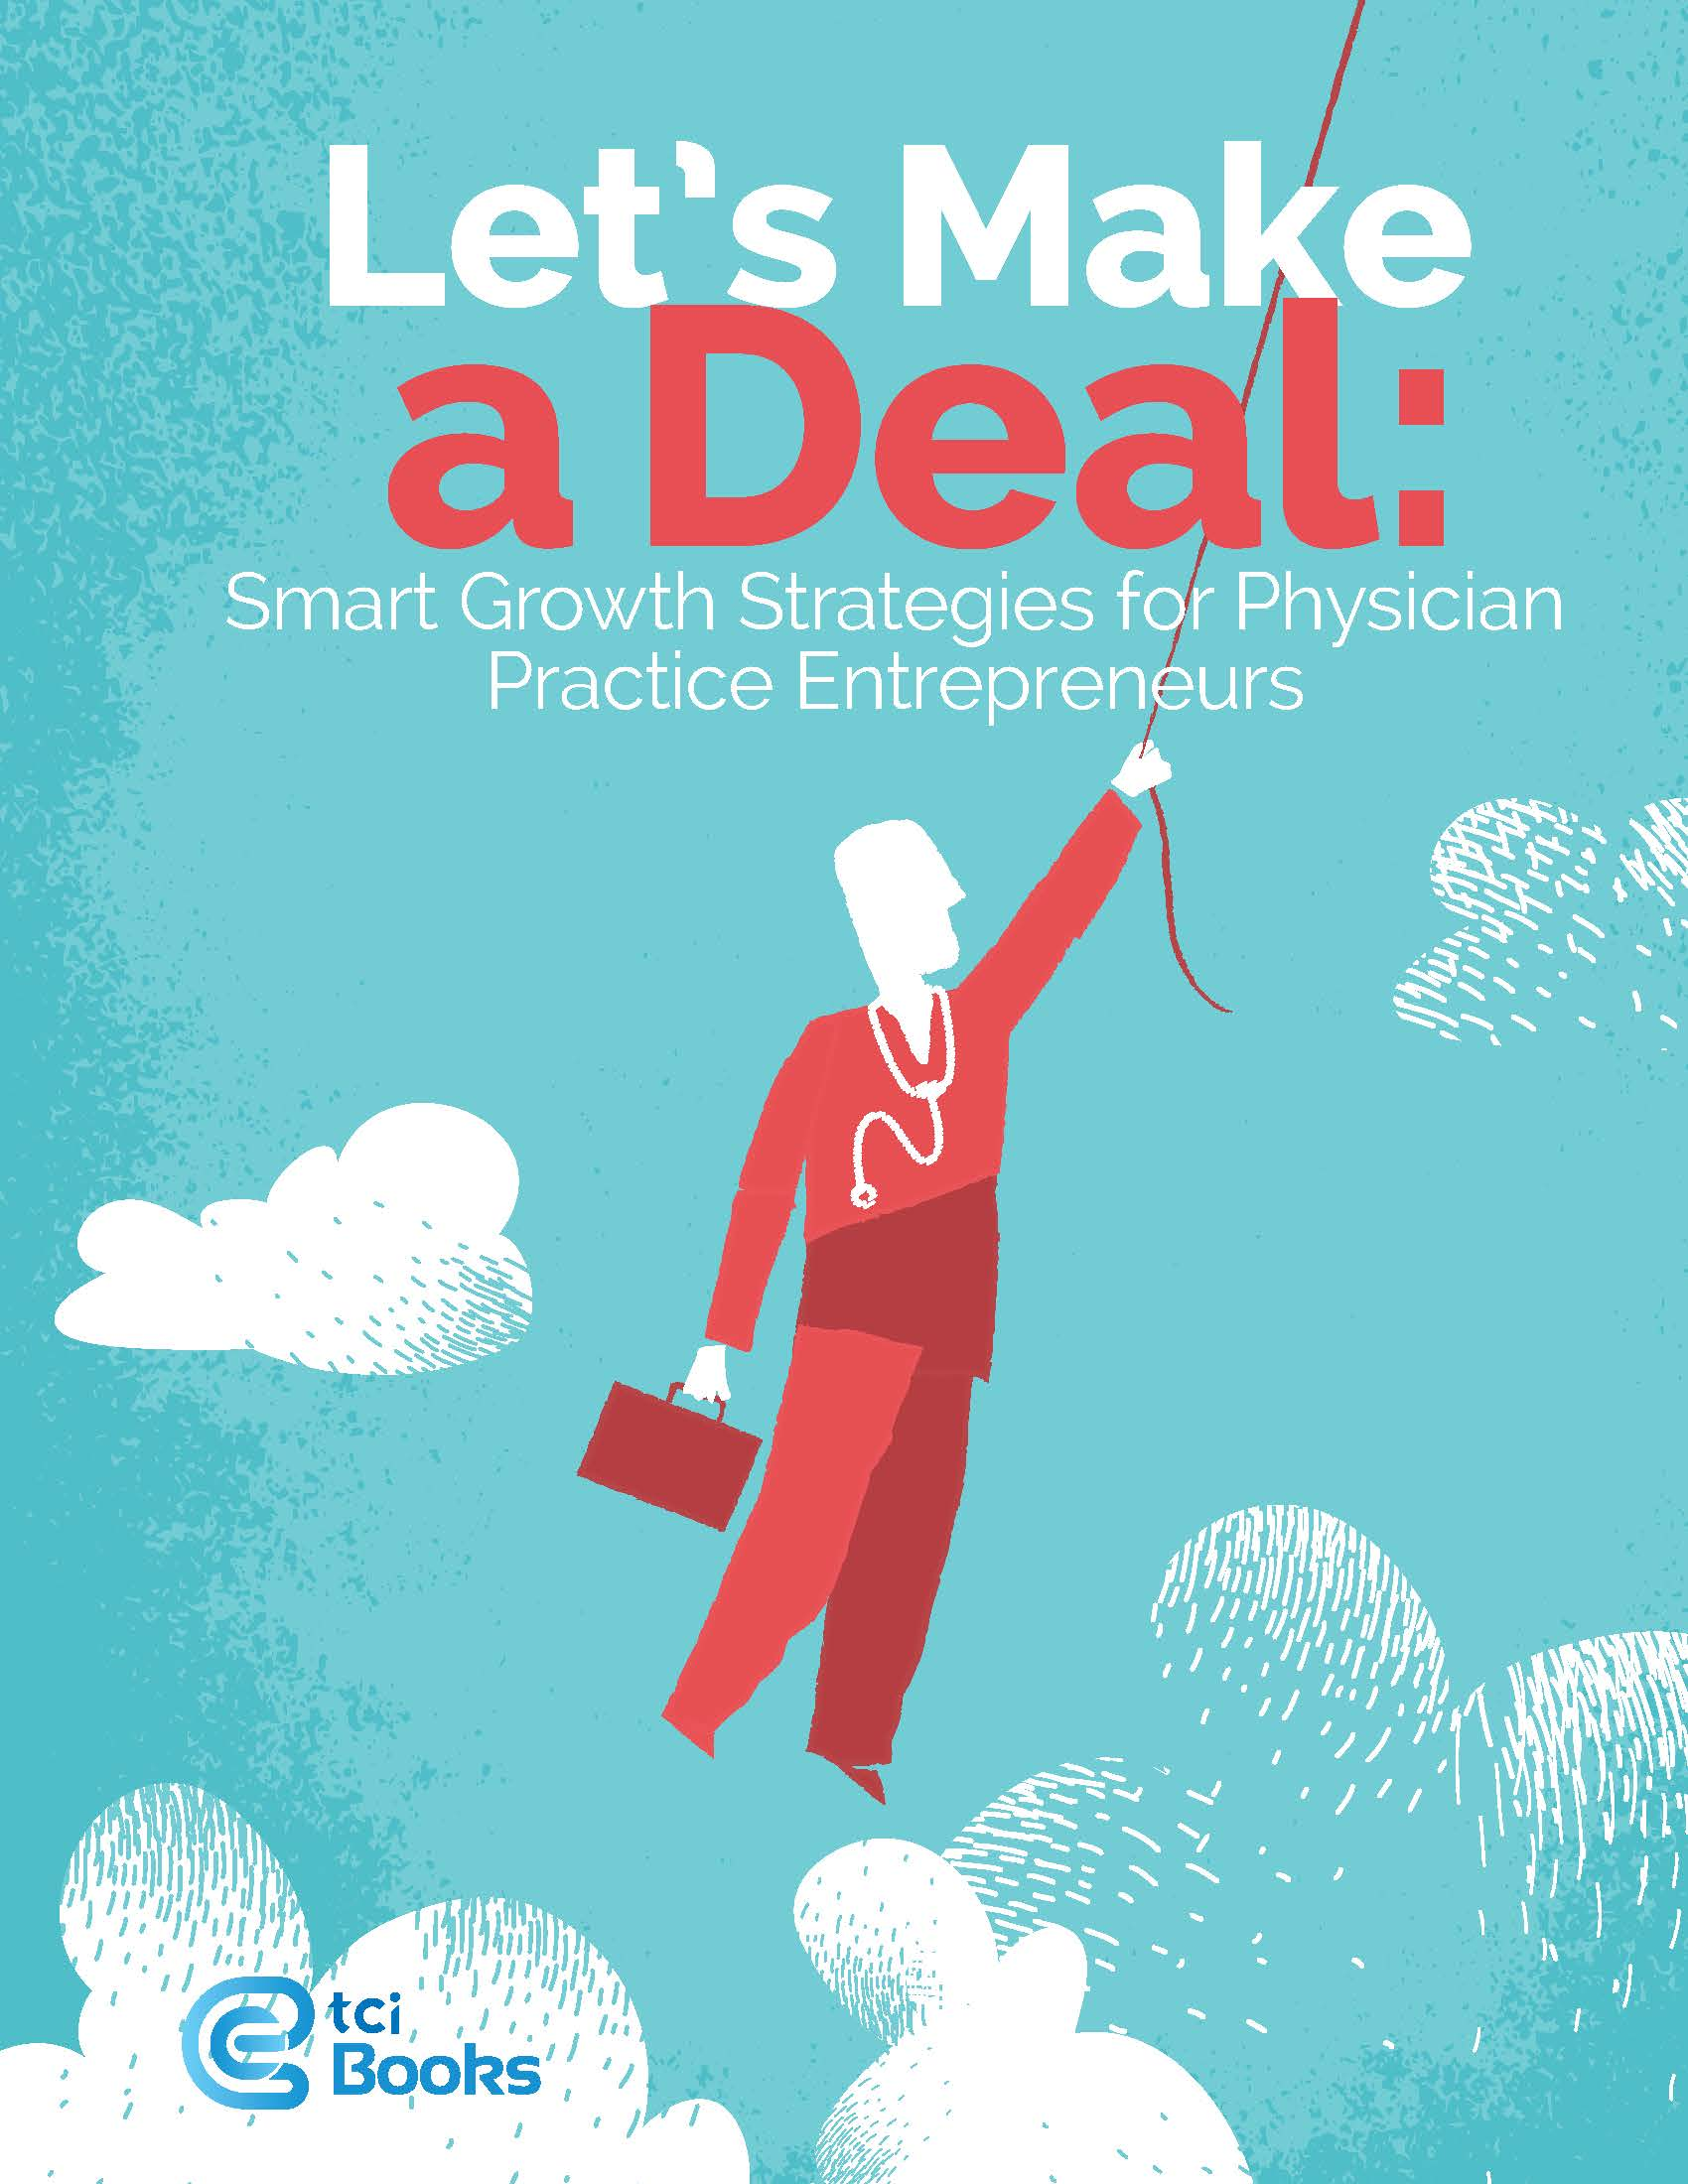 Vendor book store aapc let make a deal smart growth strategies for physiciantci publisher the coding insitute llc isbn 978 1 63527 280 2 price 149 fandeluxe Choice Image